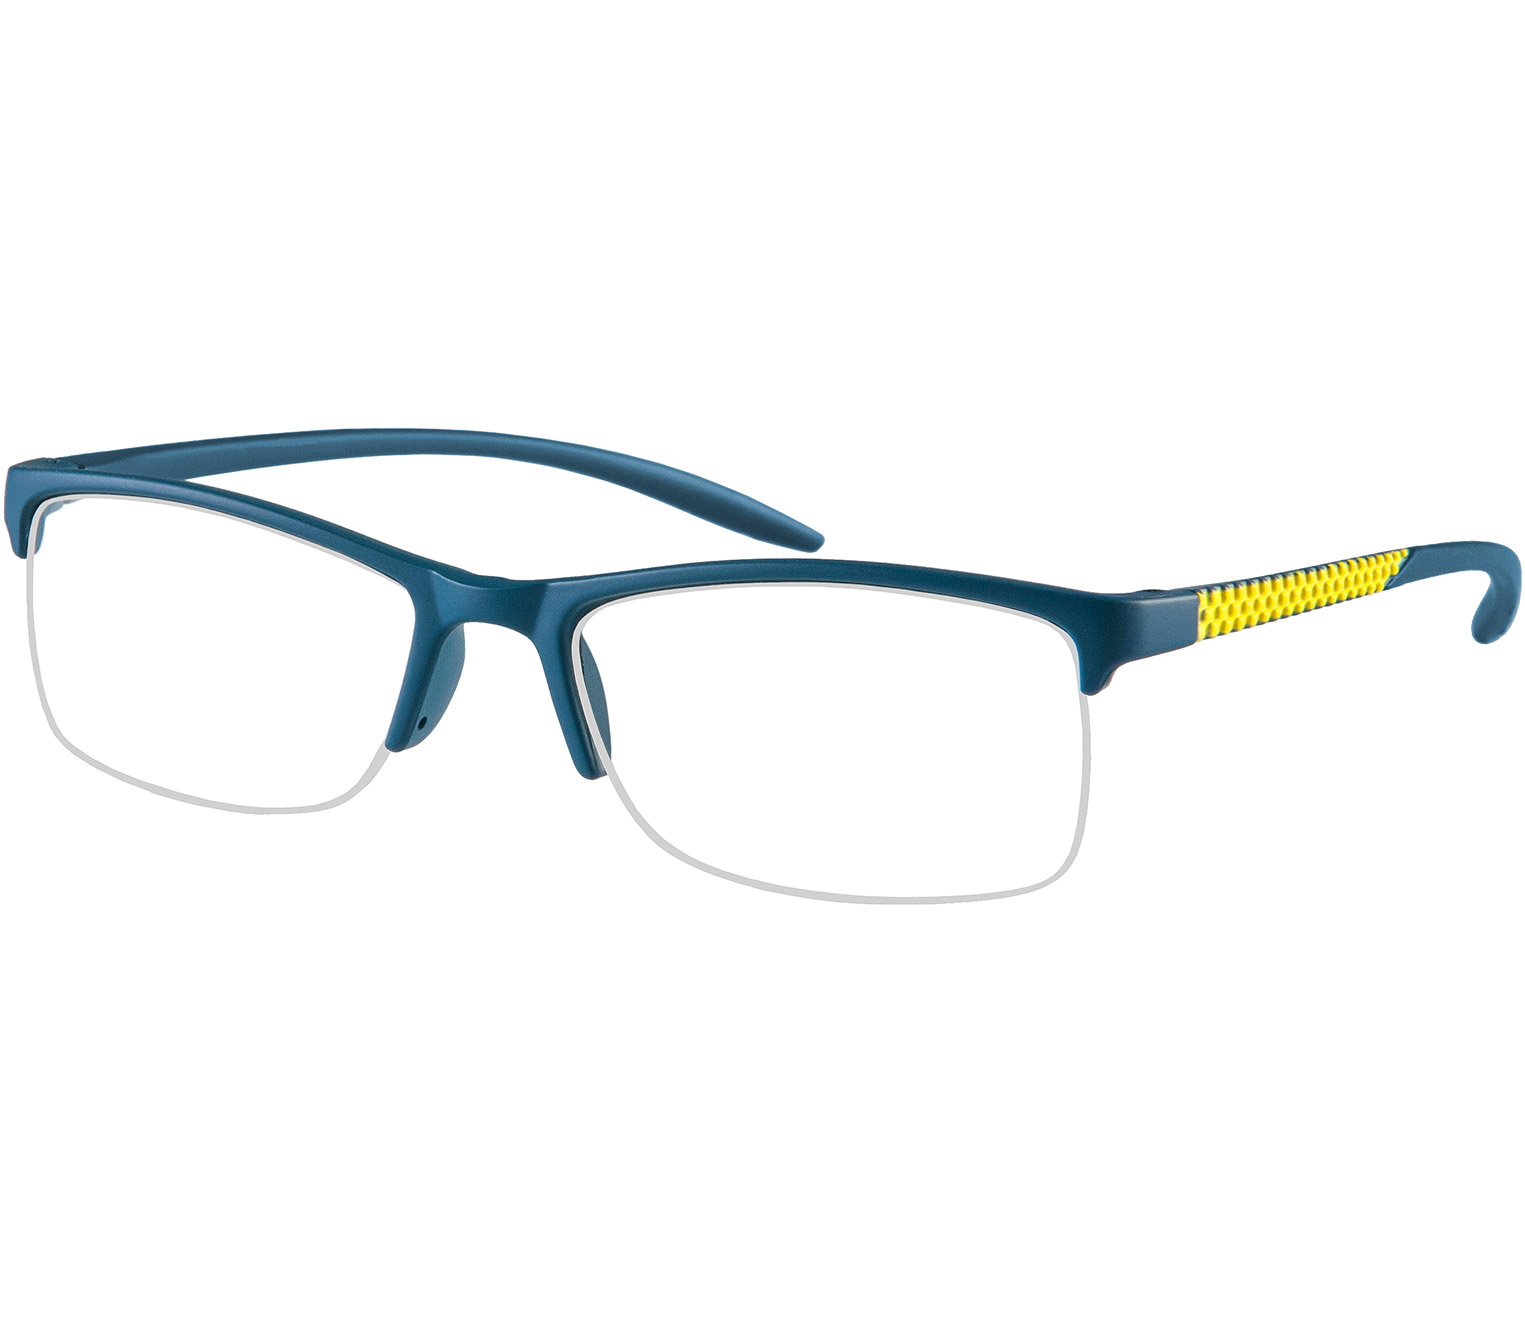 Main Image (Angle) - Solent (Blue) Semi-rimless Reading Glasses